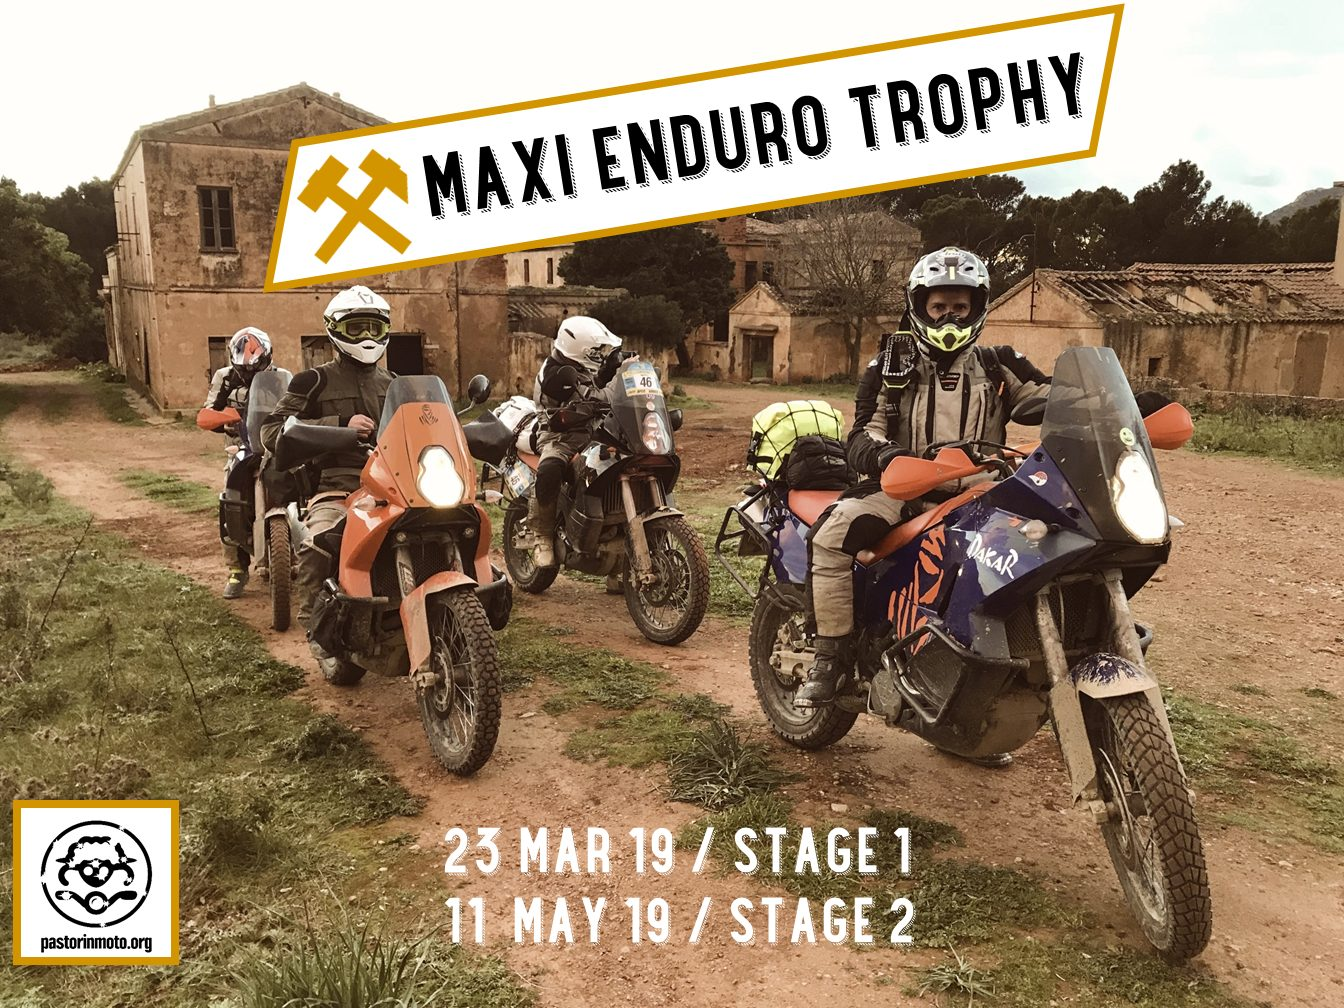 Join the Maxi Enduro Trophy 2019!